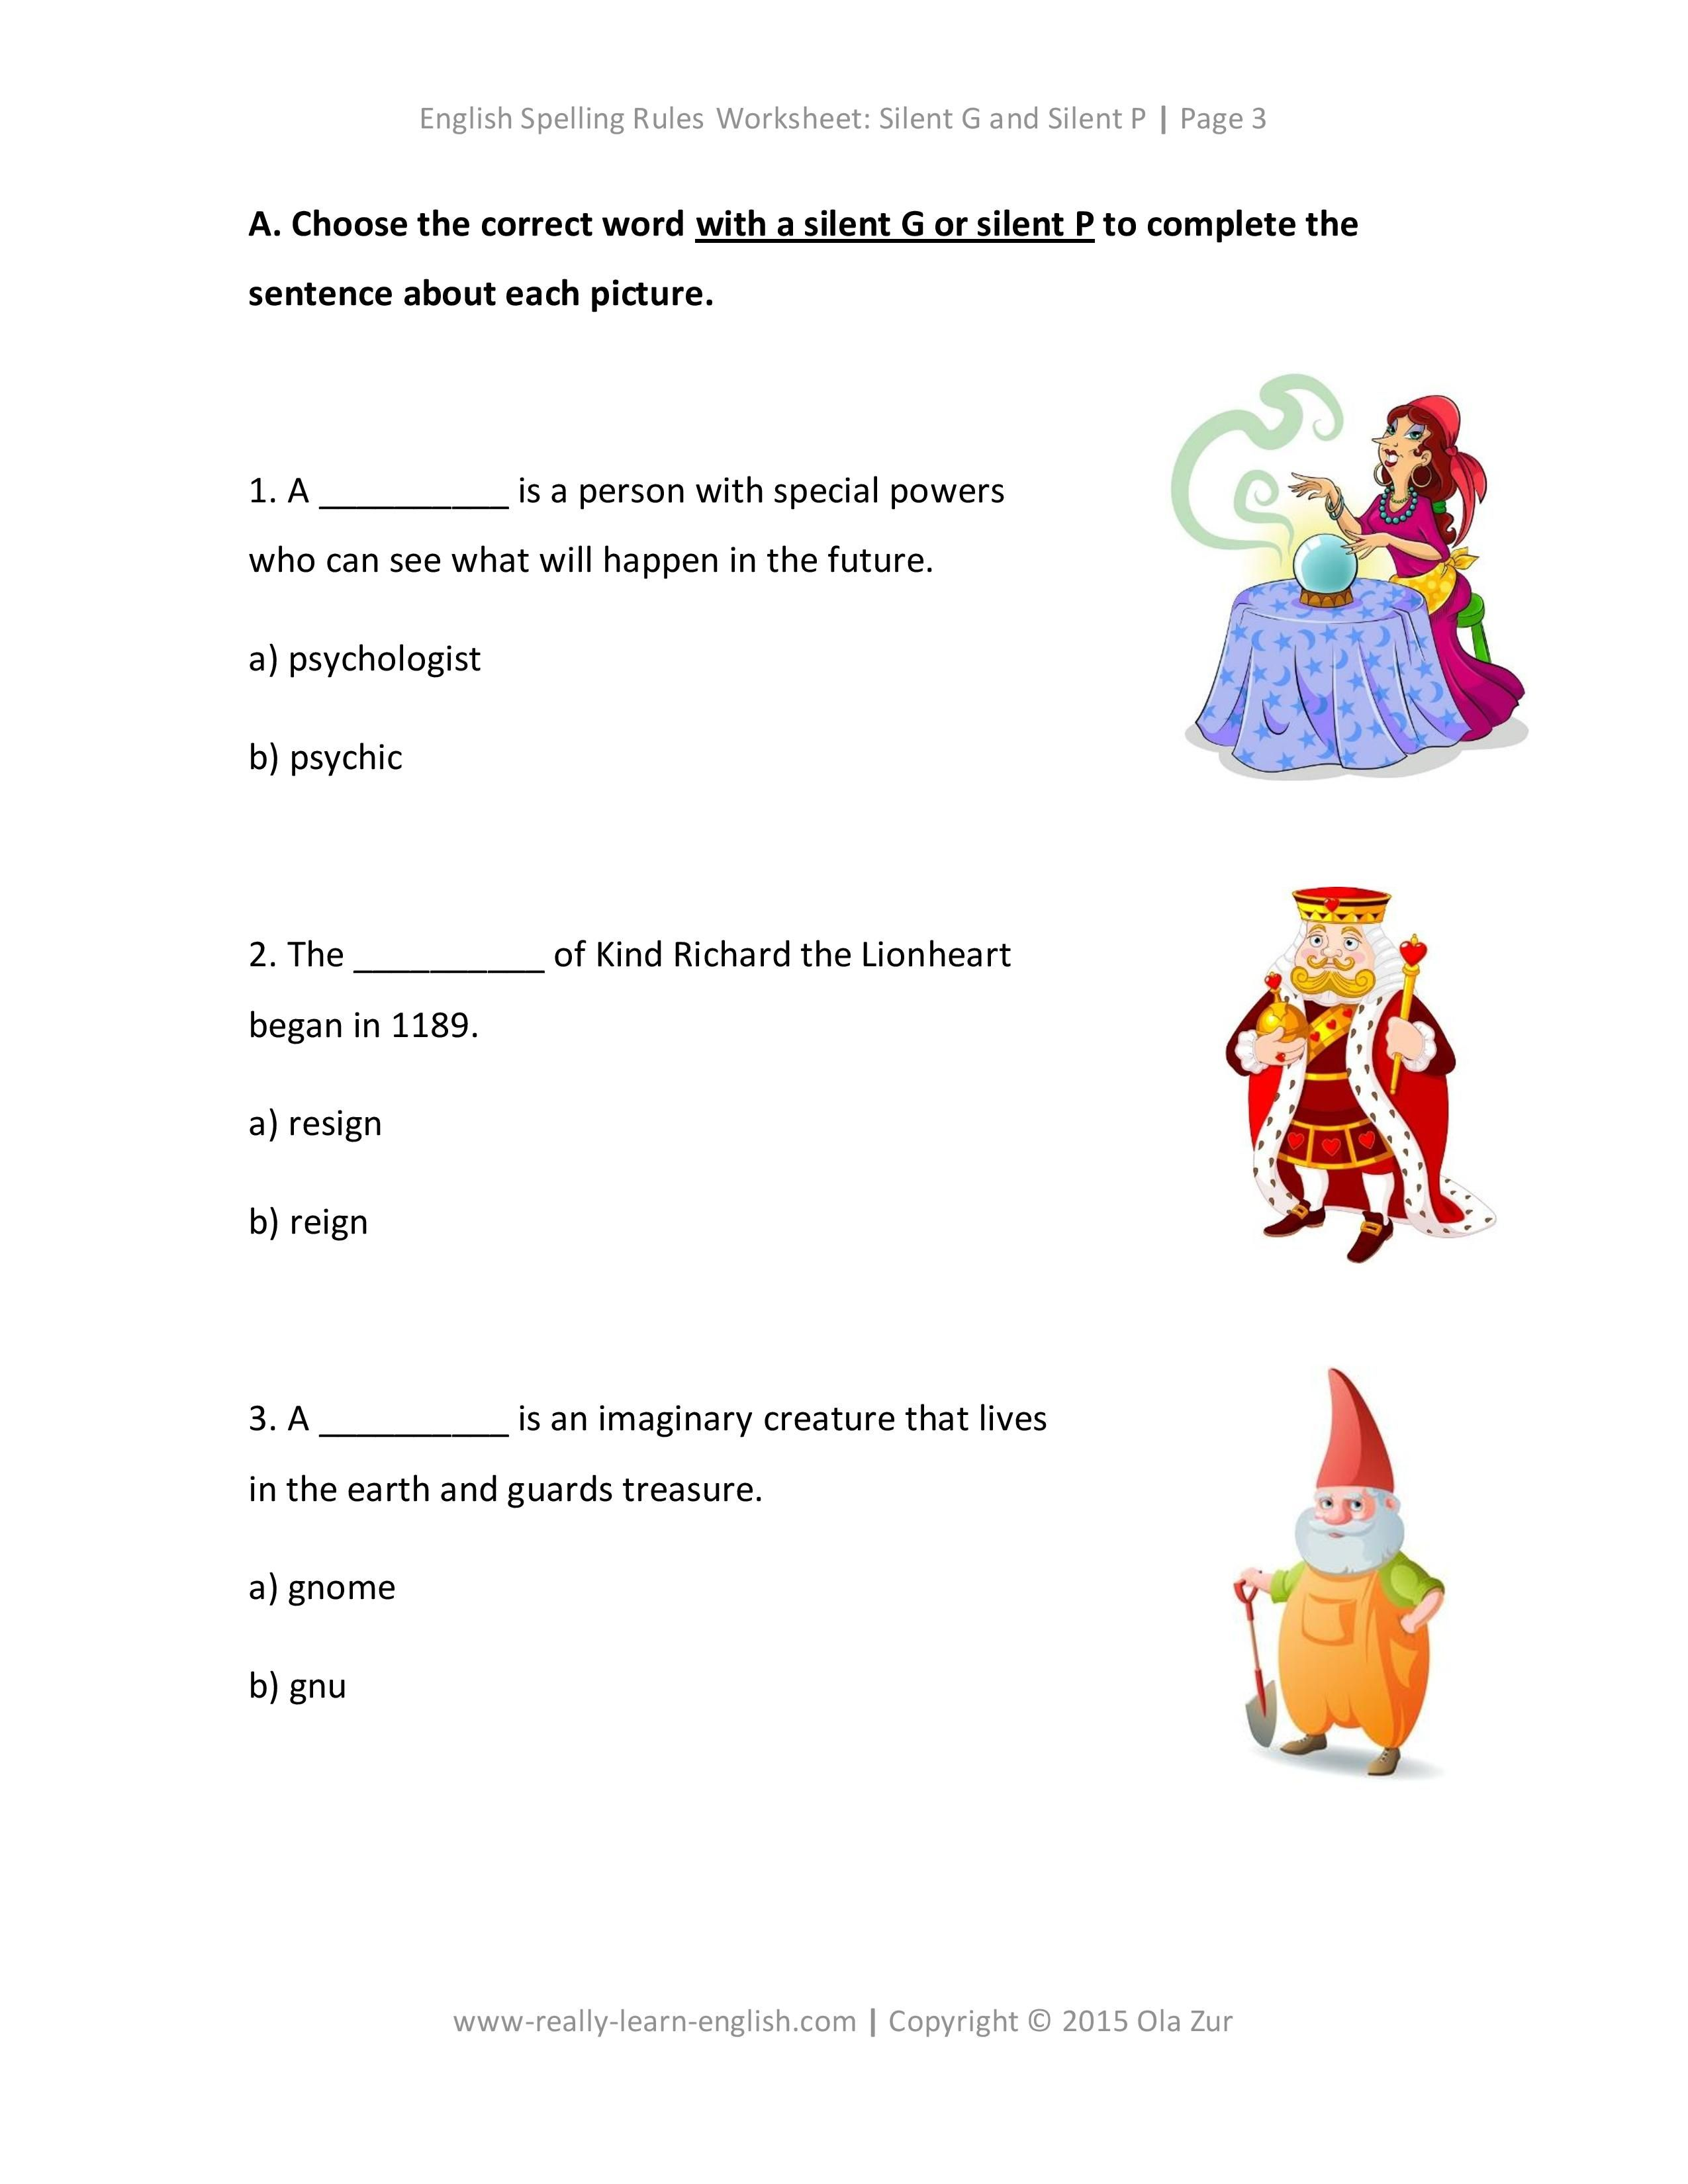 English Spelling Rules Worksheets For Silent G And Silent